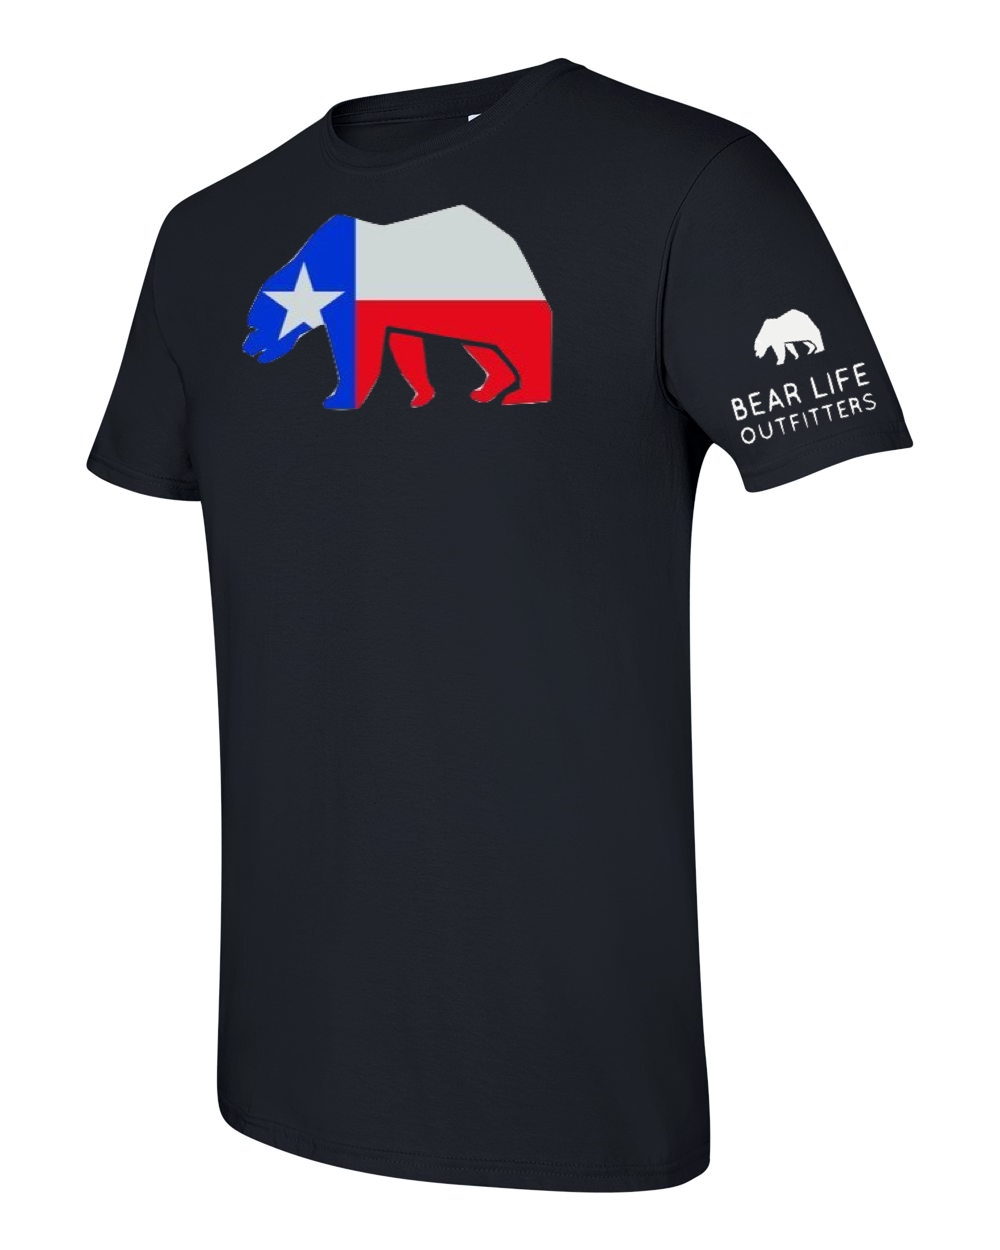 Bear Life Outfitters